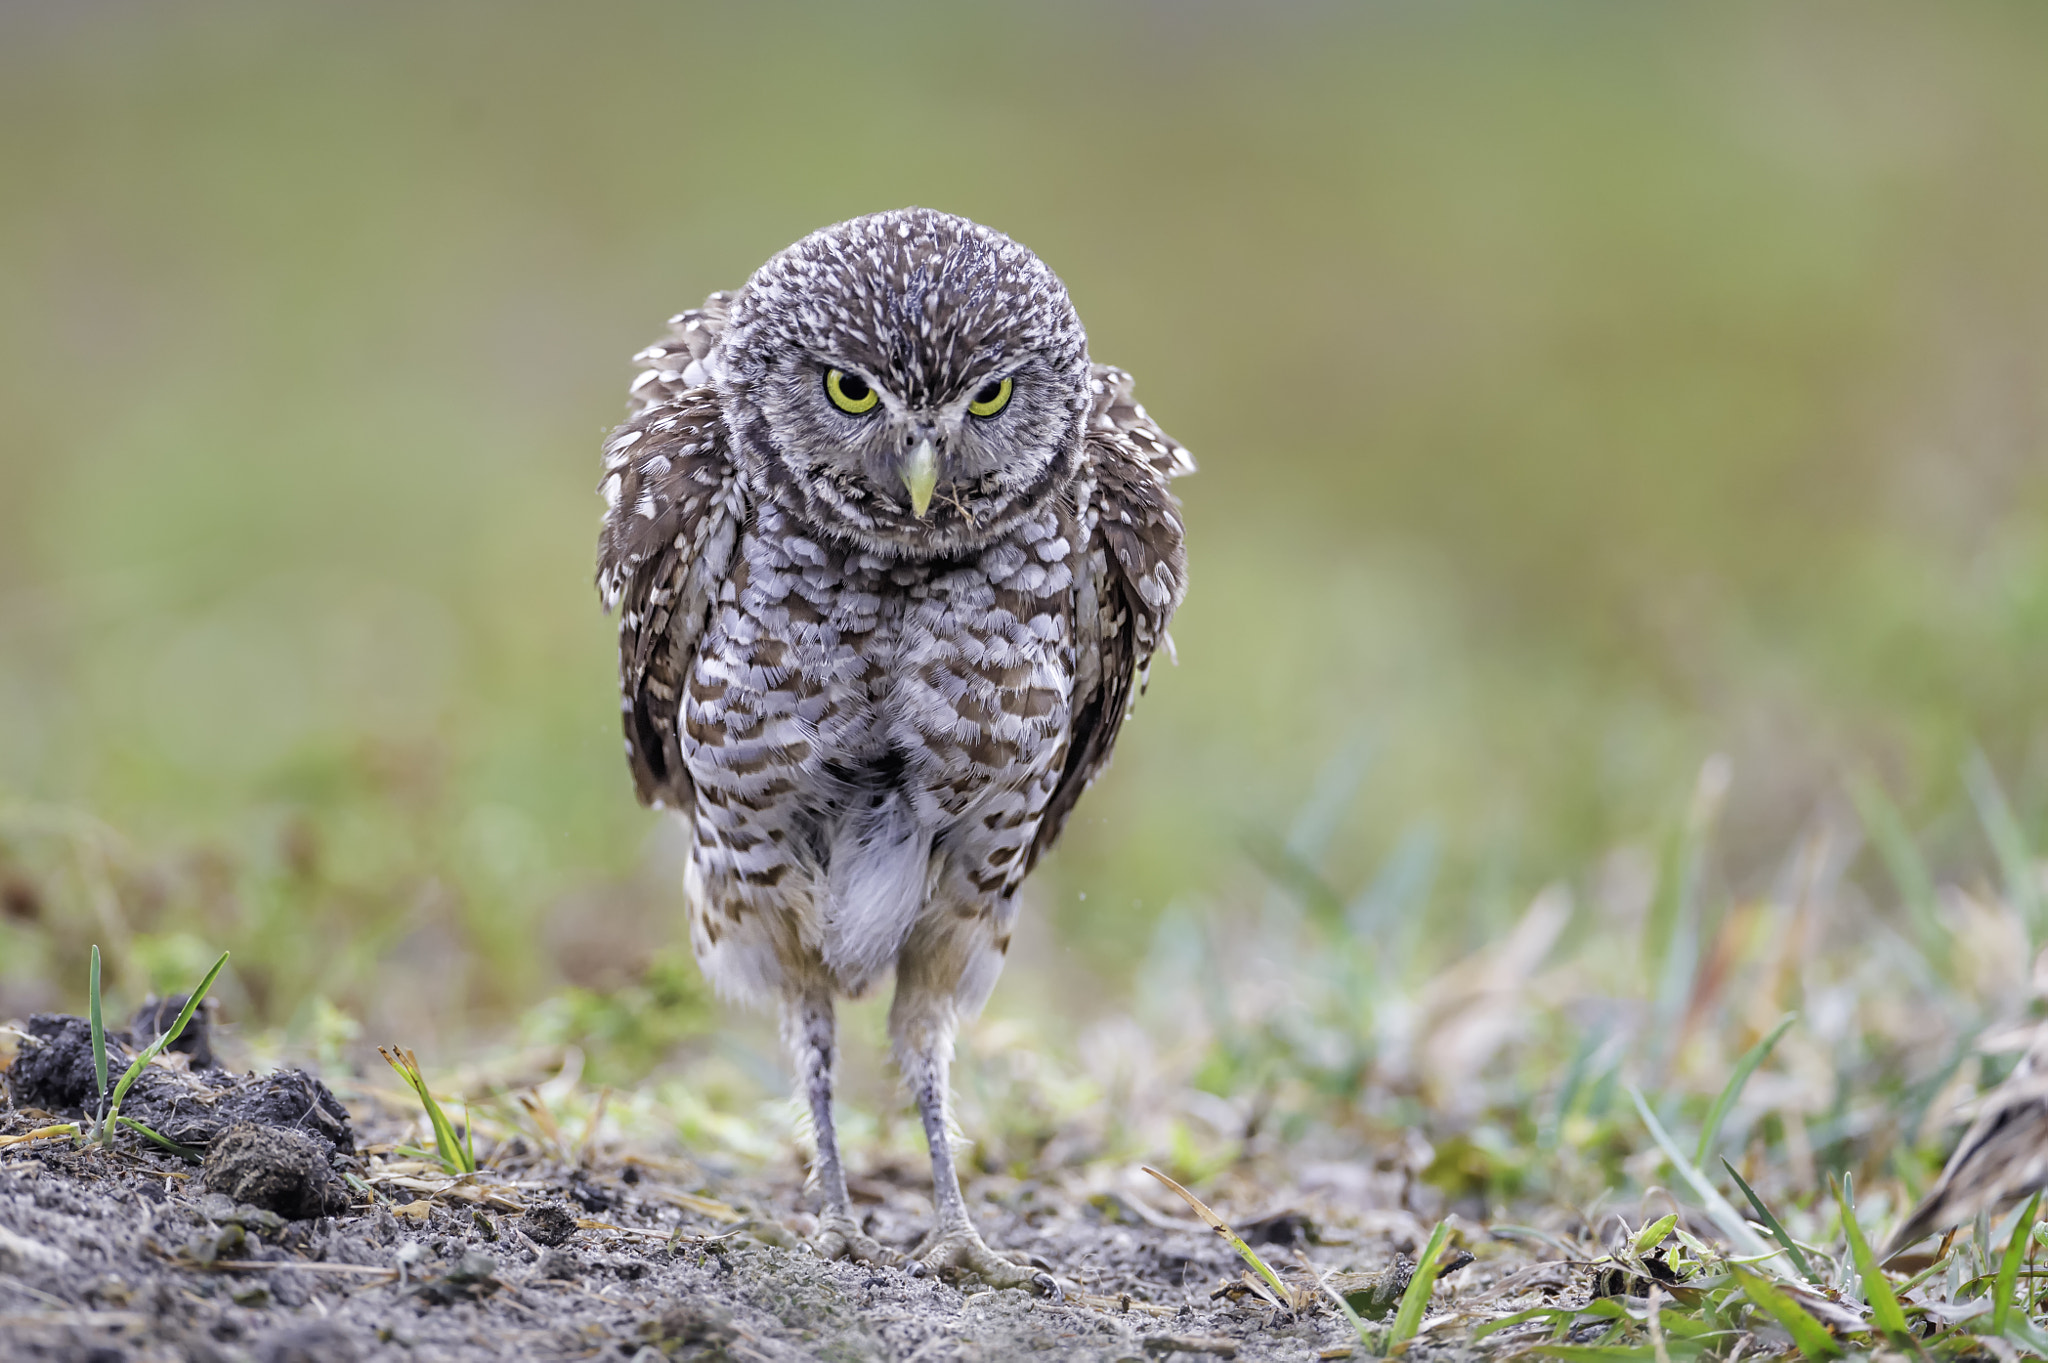 Photograph Miffed mayhaps...? by Daniel Parent on 500px